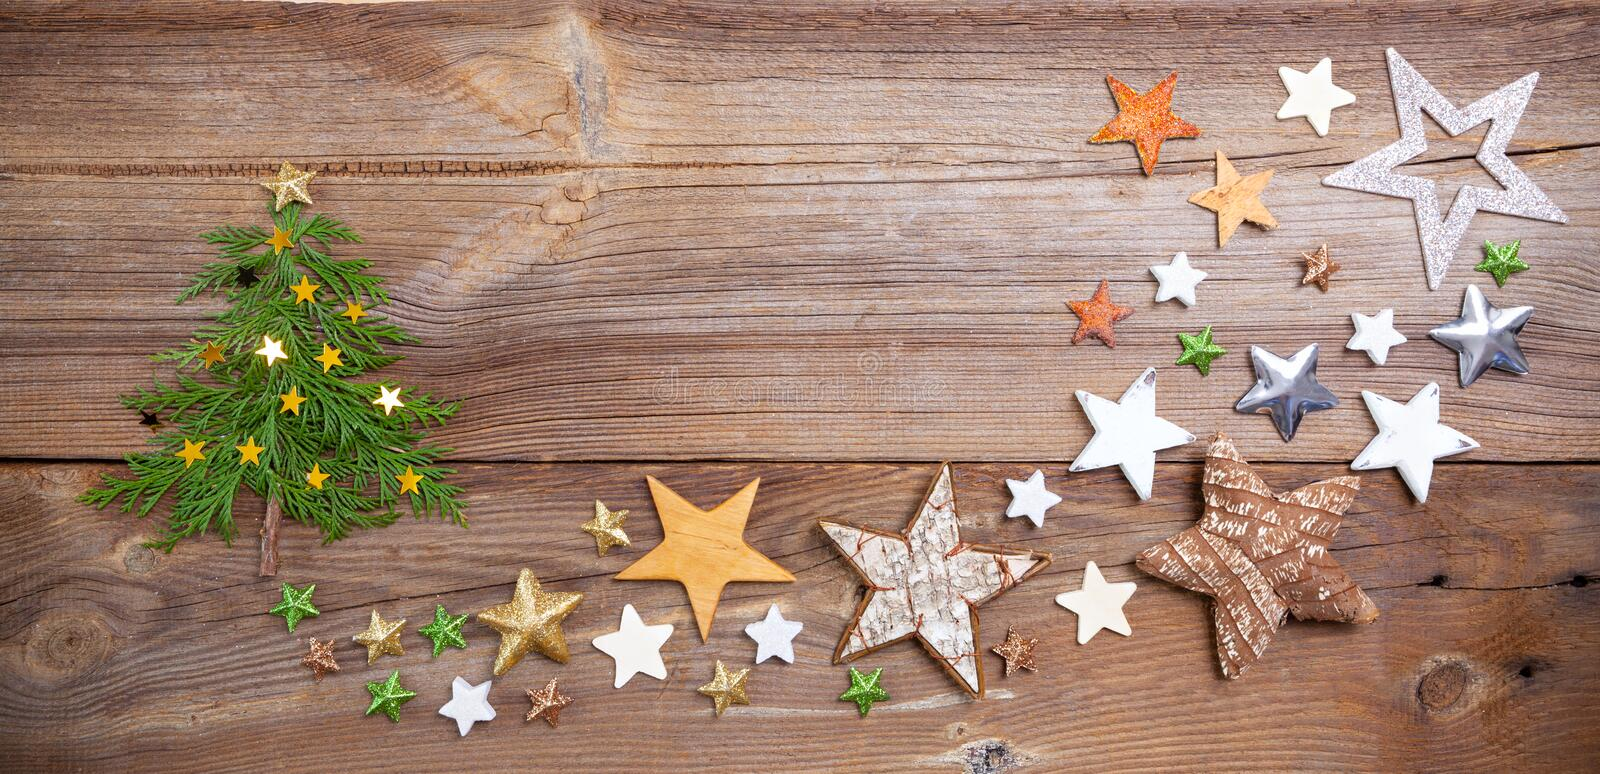 Christmas tree on wooden board with many stars royalty free stock photo